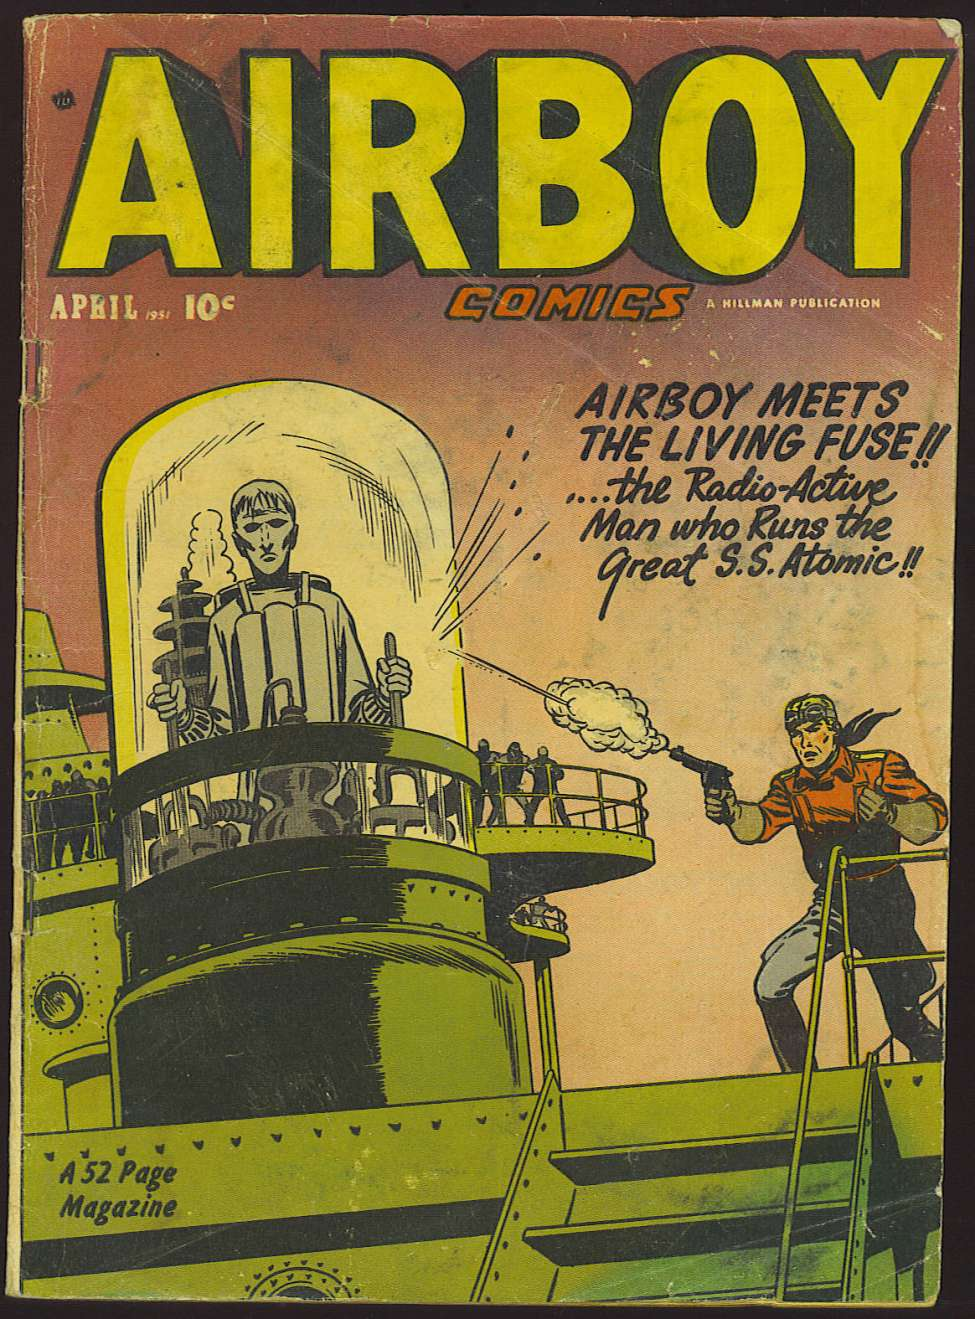 Comic Book Cover For Airboy Comics v8 3 [86]